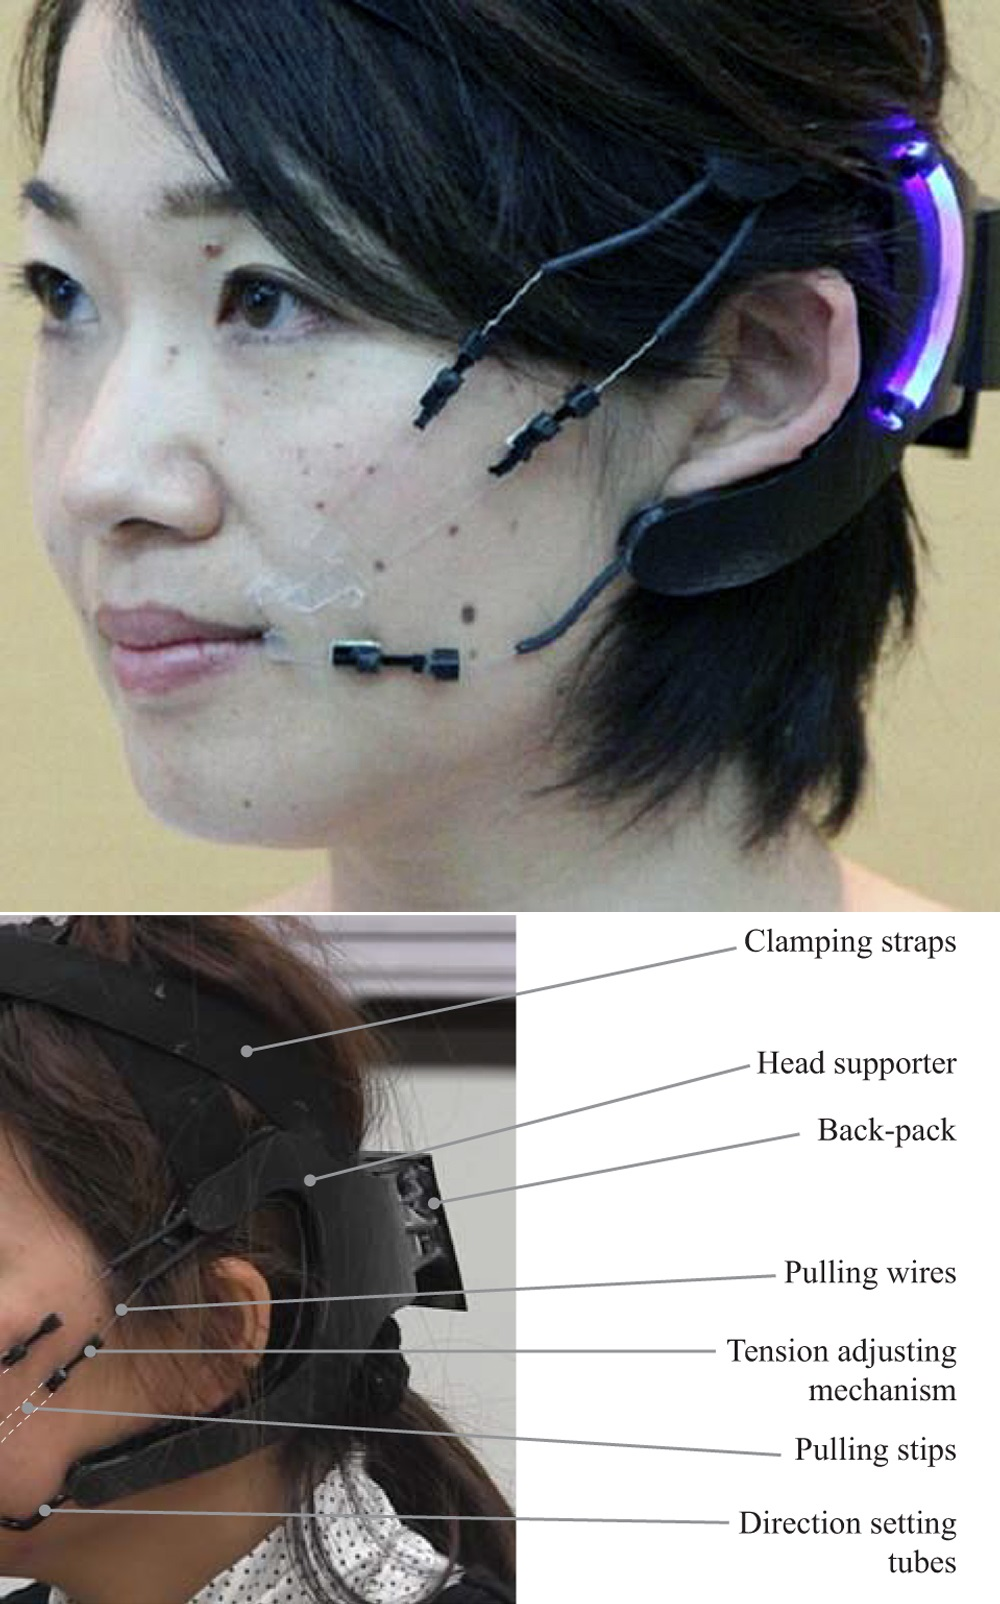 Still in development, The Robot Mask provides physical support to patients with facial paralysis.